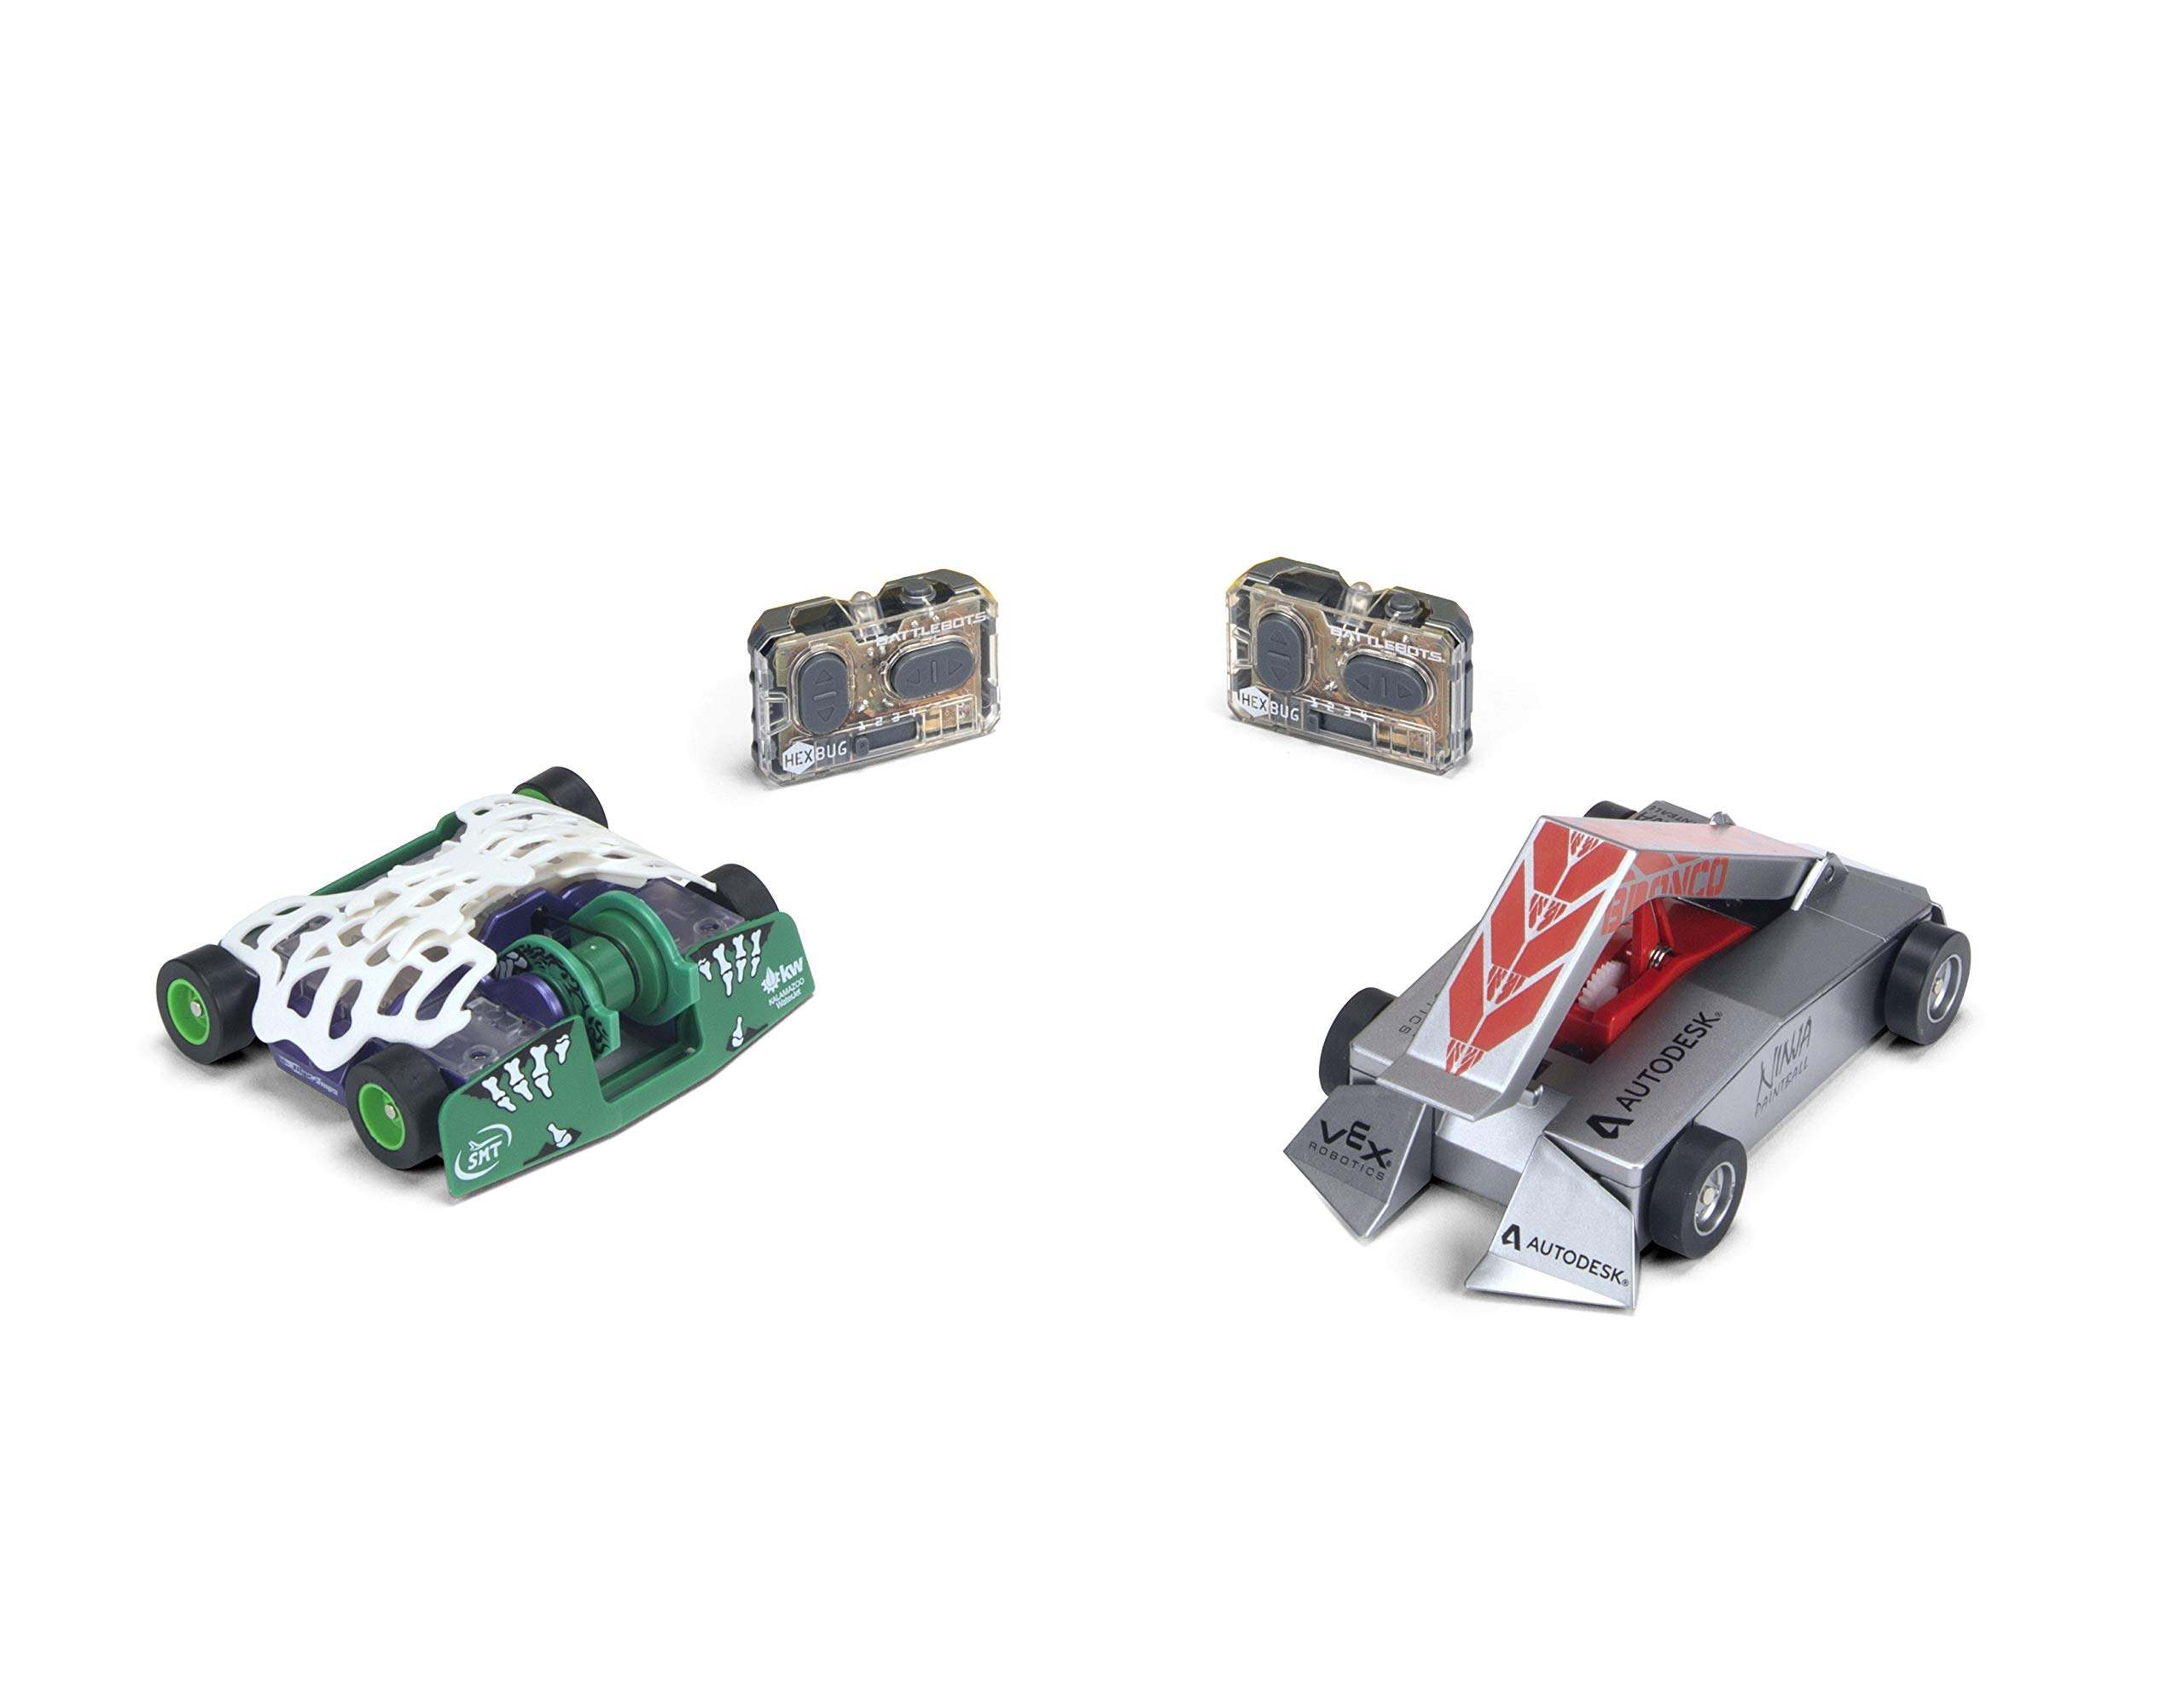 HEXBUG BattleBots Rivals (Bronco and Witch Doctor) by HEXBUG (Image #1)